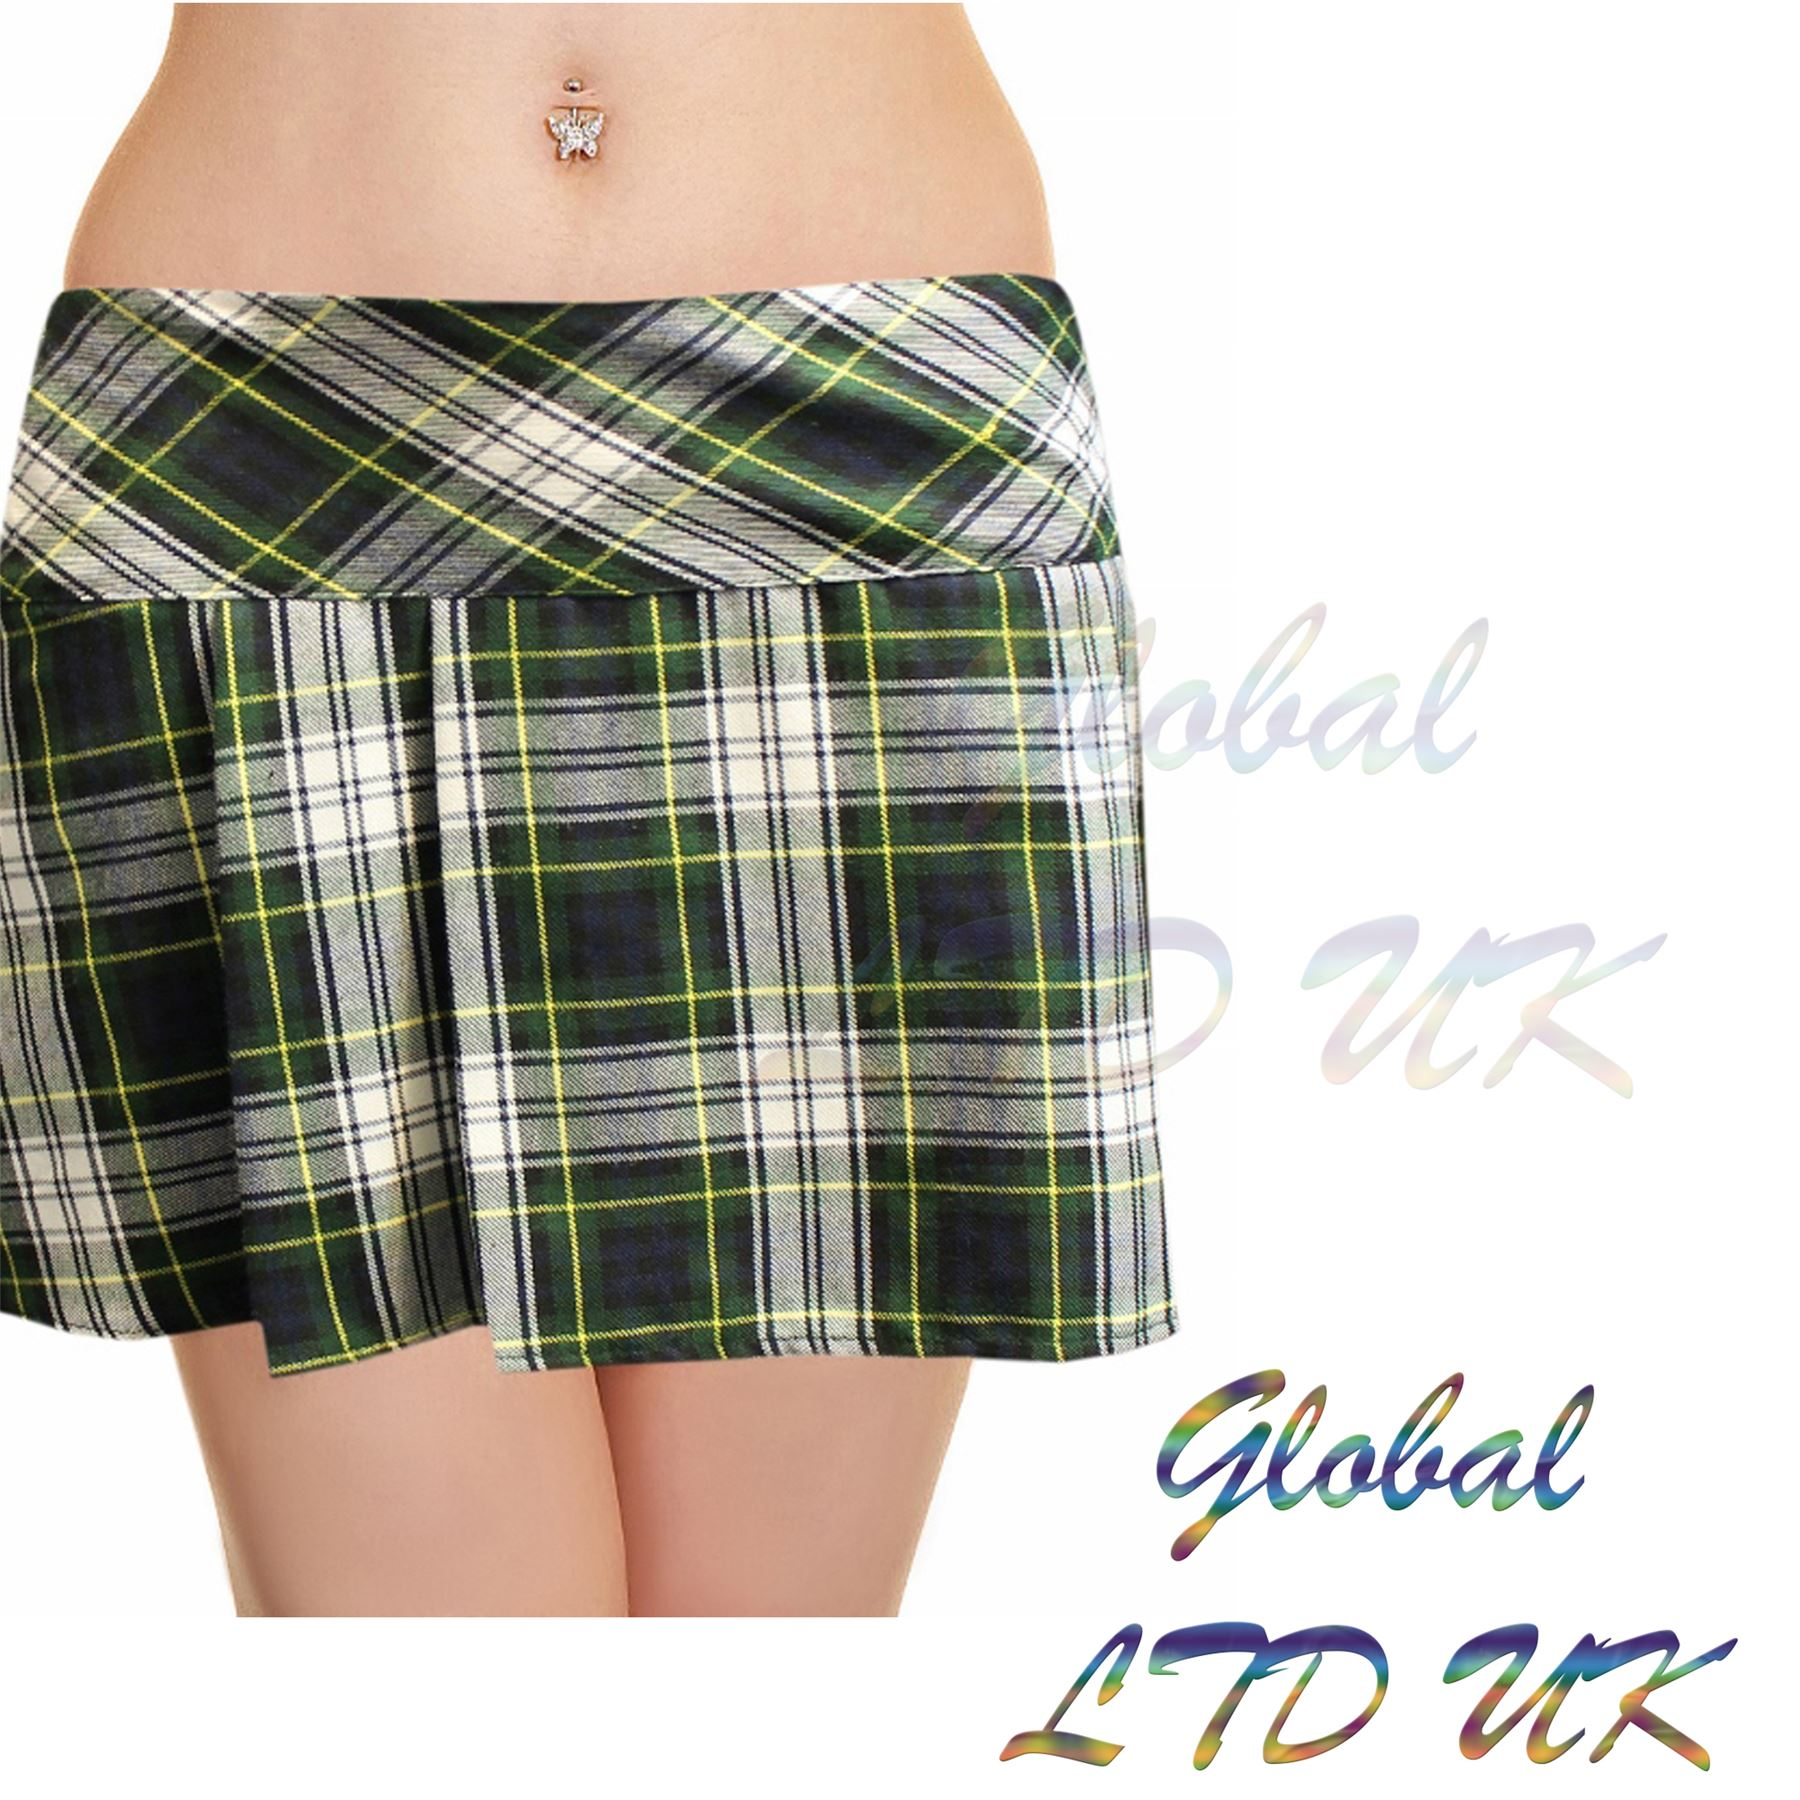 Tons of free Tartan Skirt porn videos and XXX movies are waiting for you on Redtube. Find the best Tartan Skirt videos right here and discover why our sex tube is visited by millions of porn lovers daily. Nothing but the highest quality Tartan Skirt porn on Redtube!